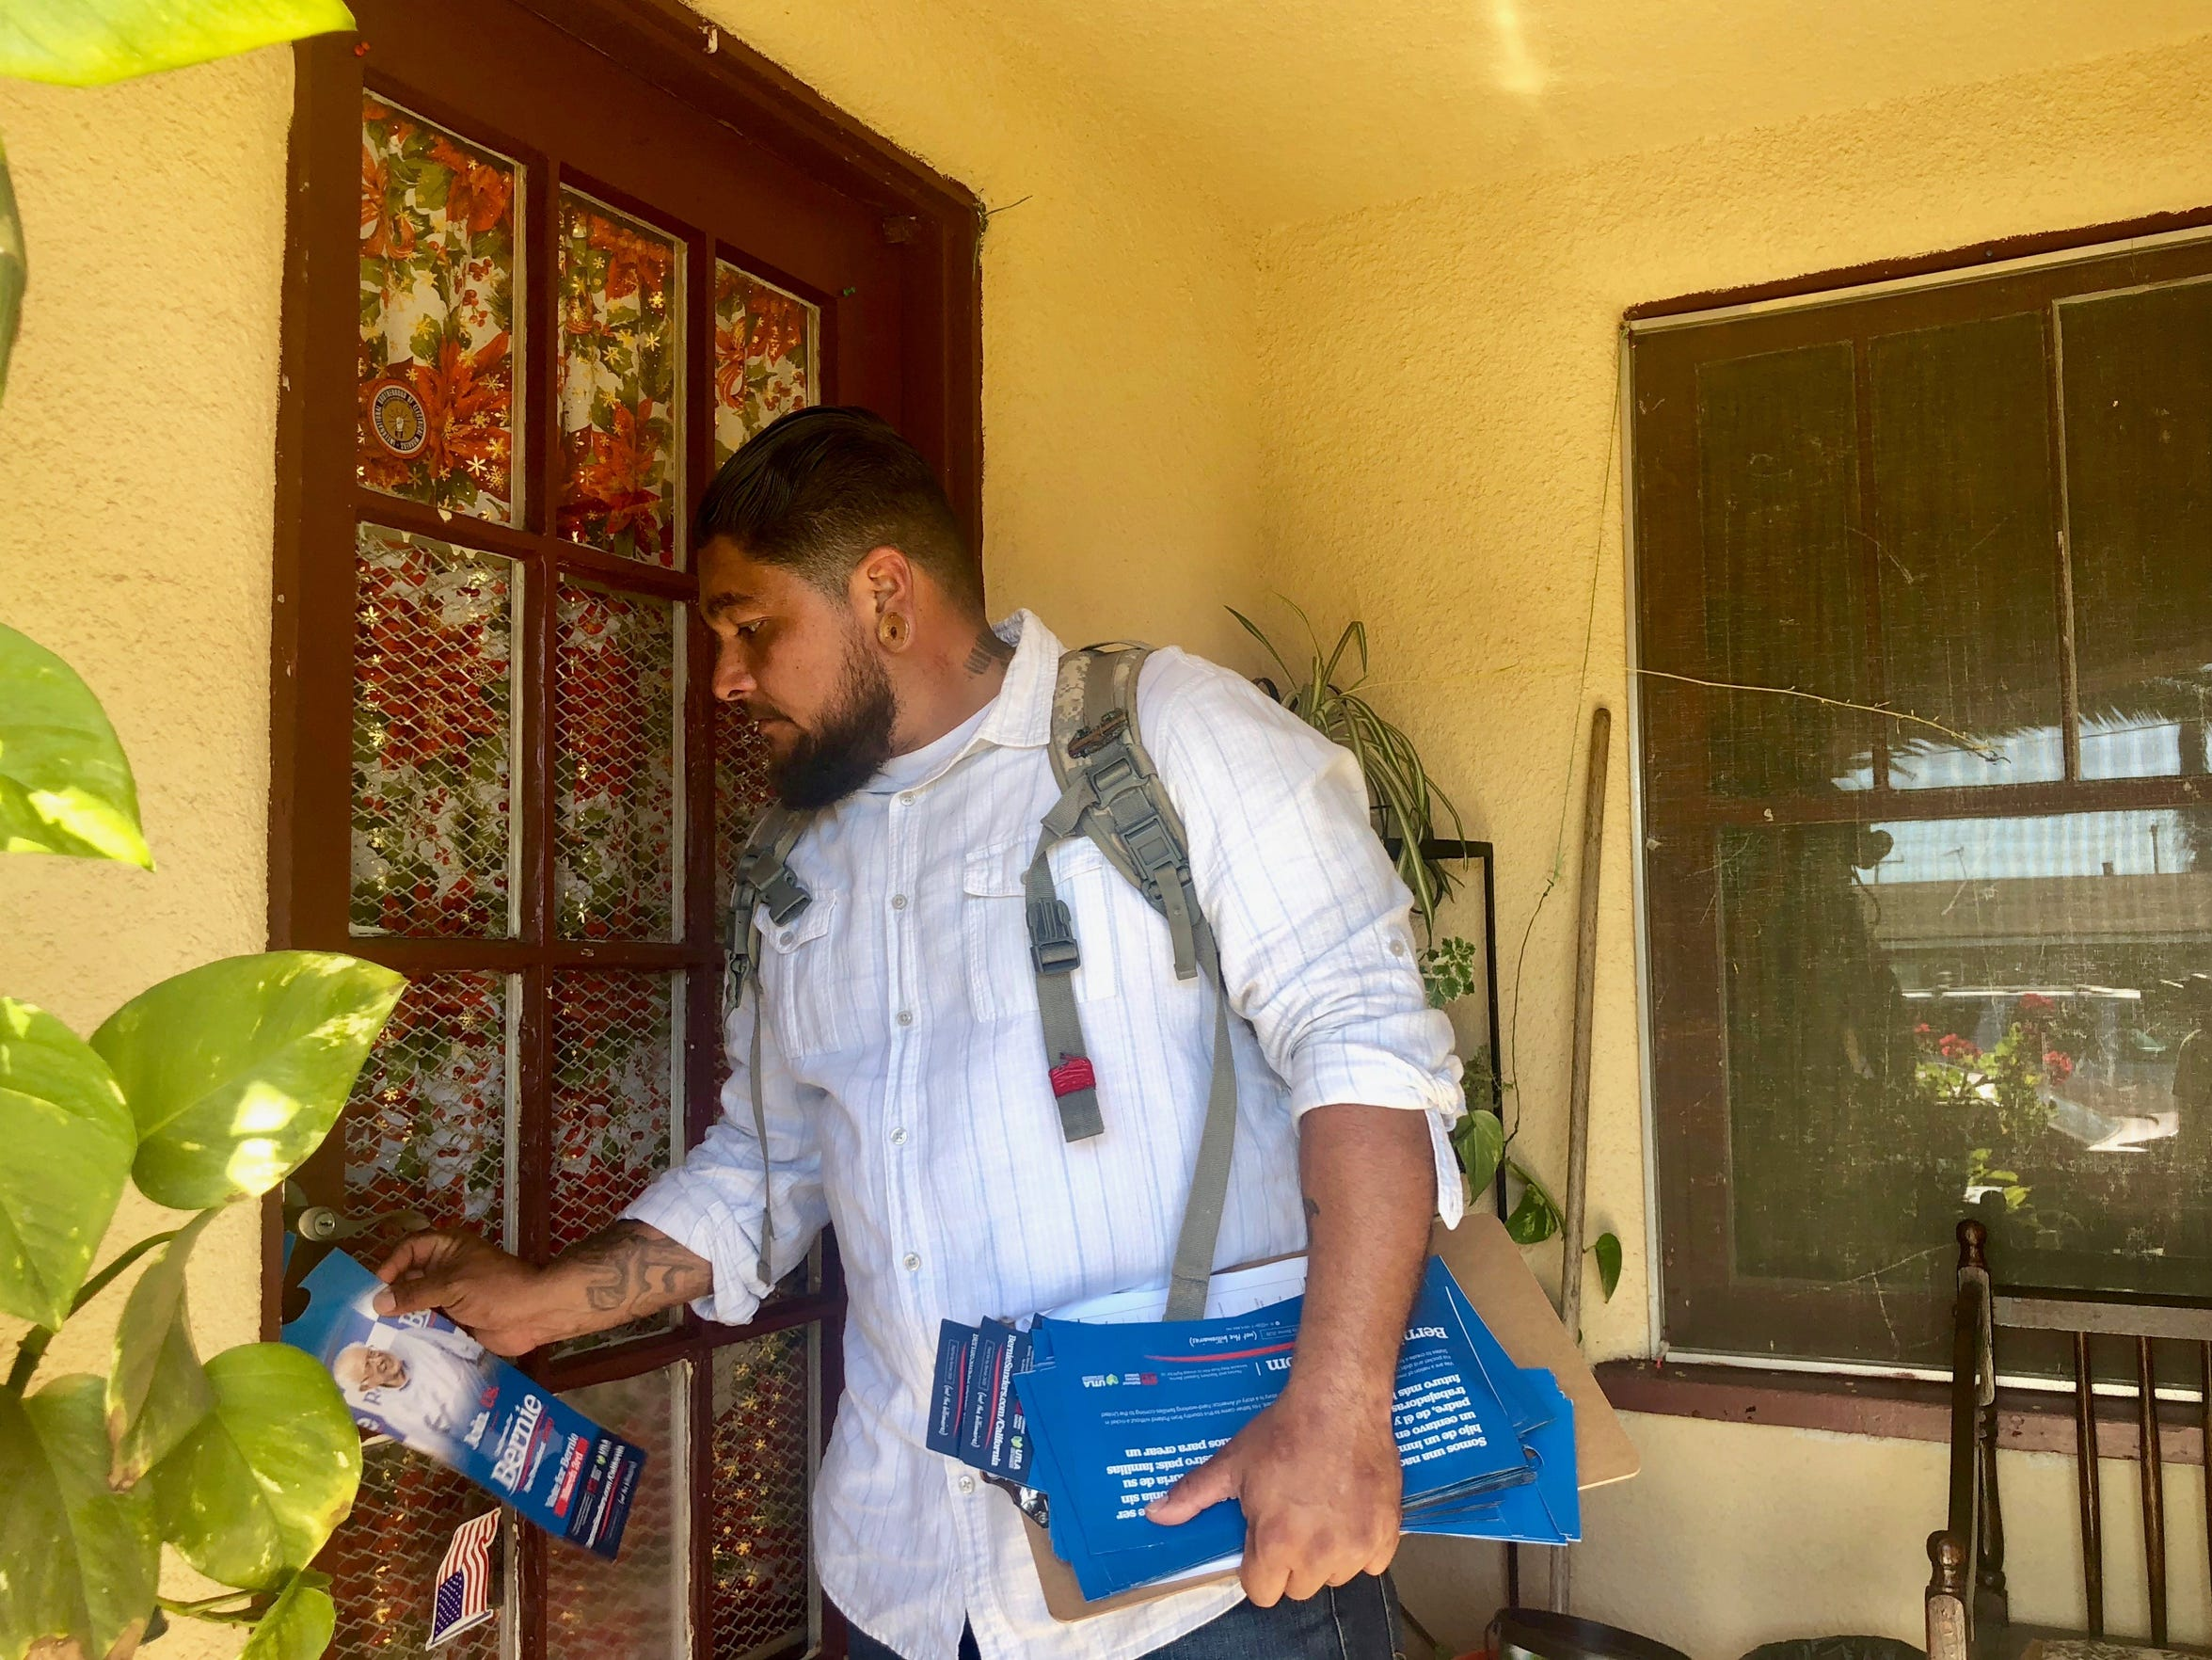 Volunteer Antonio Sepulveda leaves a flier for presidential candidate Bernie Sanders at a home in Oxnard's La Colonia neighborhood on Feb. 1. With Latino outreach a priority for Sanders, the campaign has opened an Oxnard office.